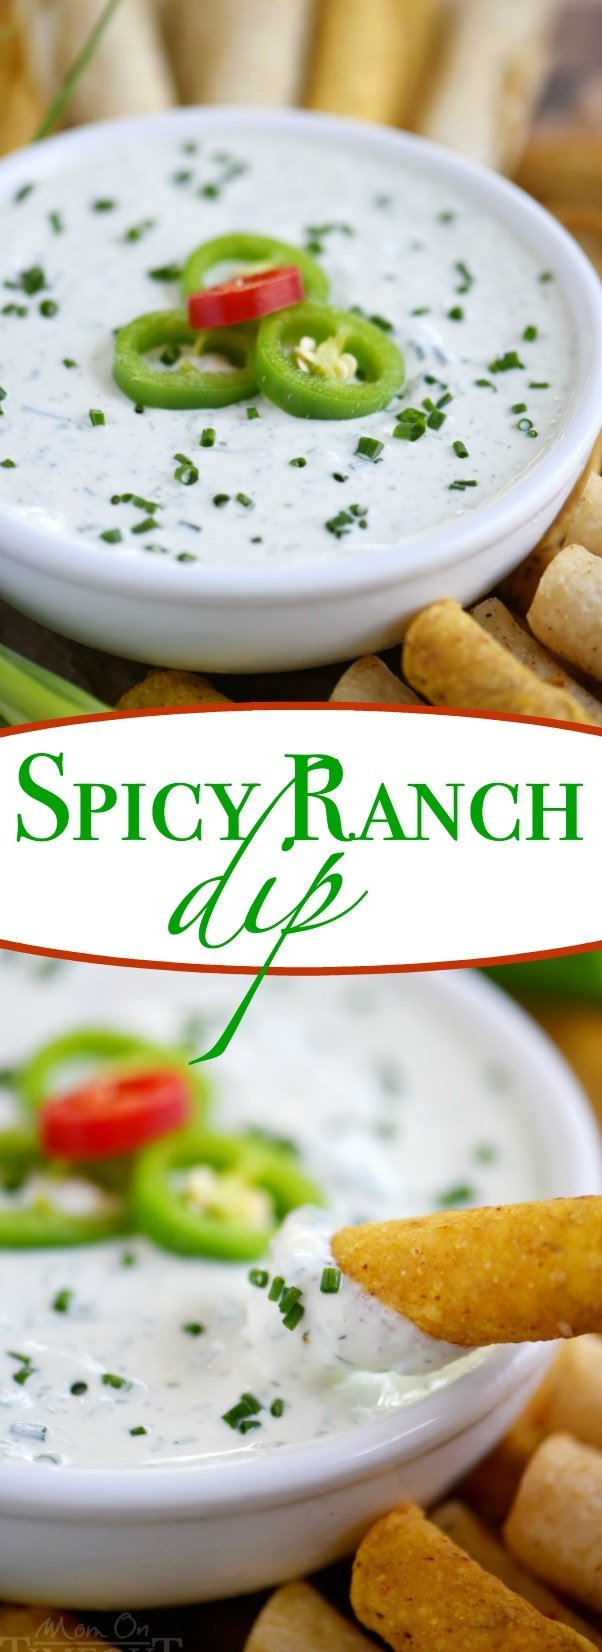 This easy Spicy Ranch Dip is made with Greek yogurt and lots of fresh ingredients for tremendous, bold flavor! Great for dipping all your favorite snacks! | Mom On Timeout